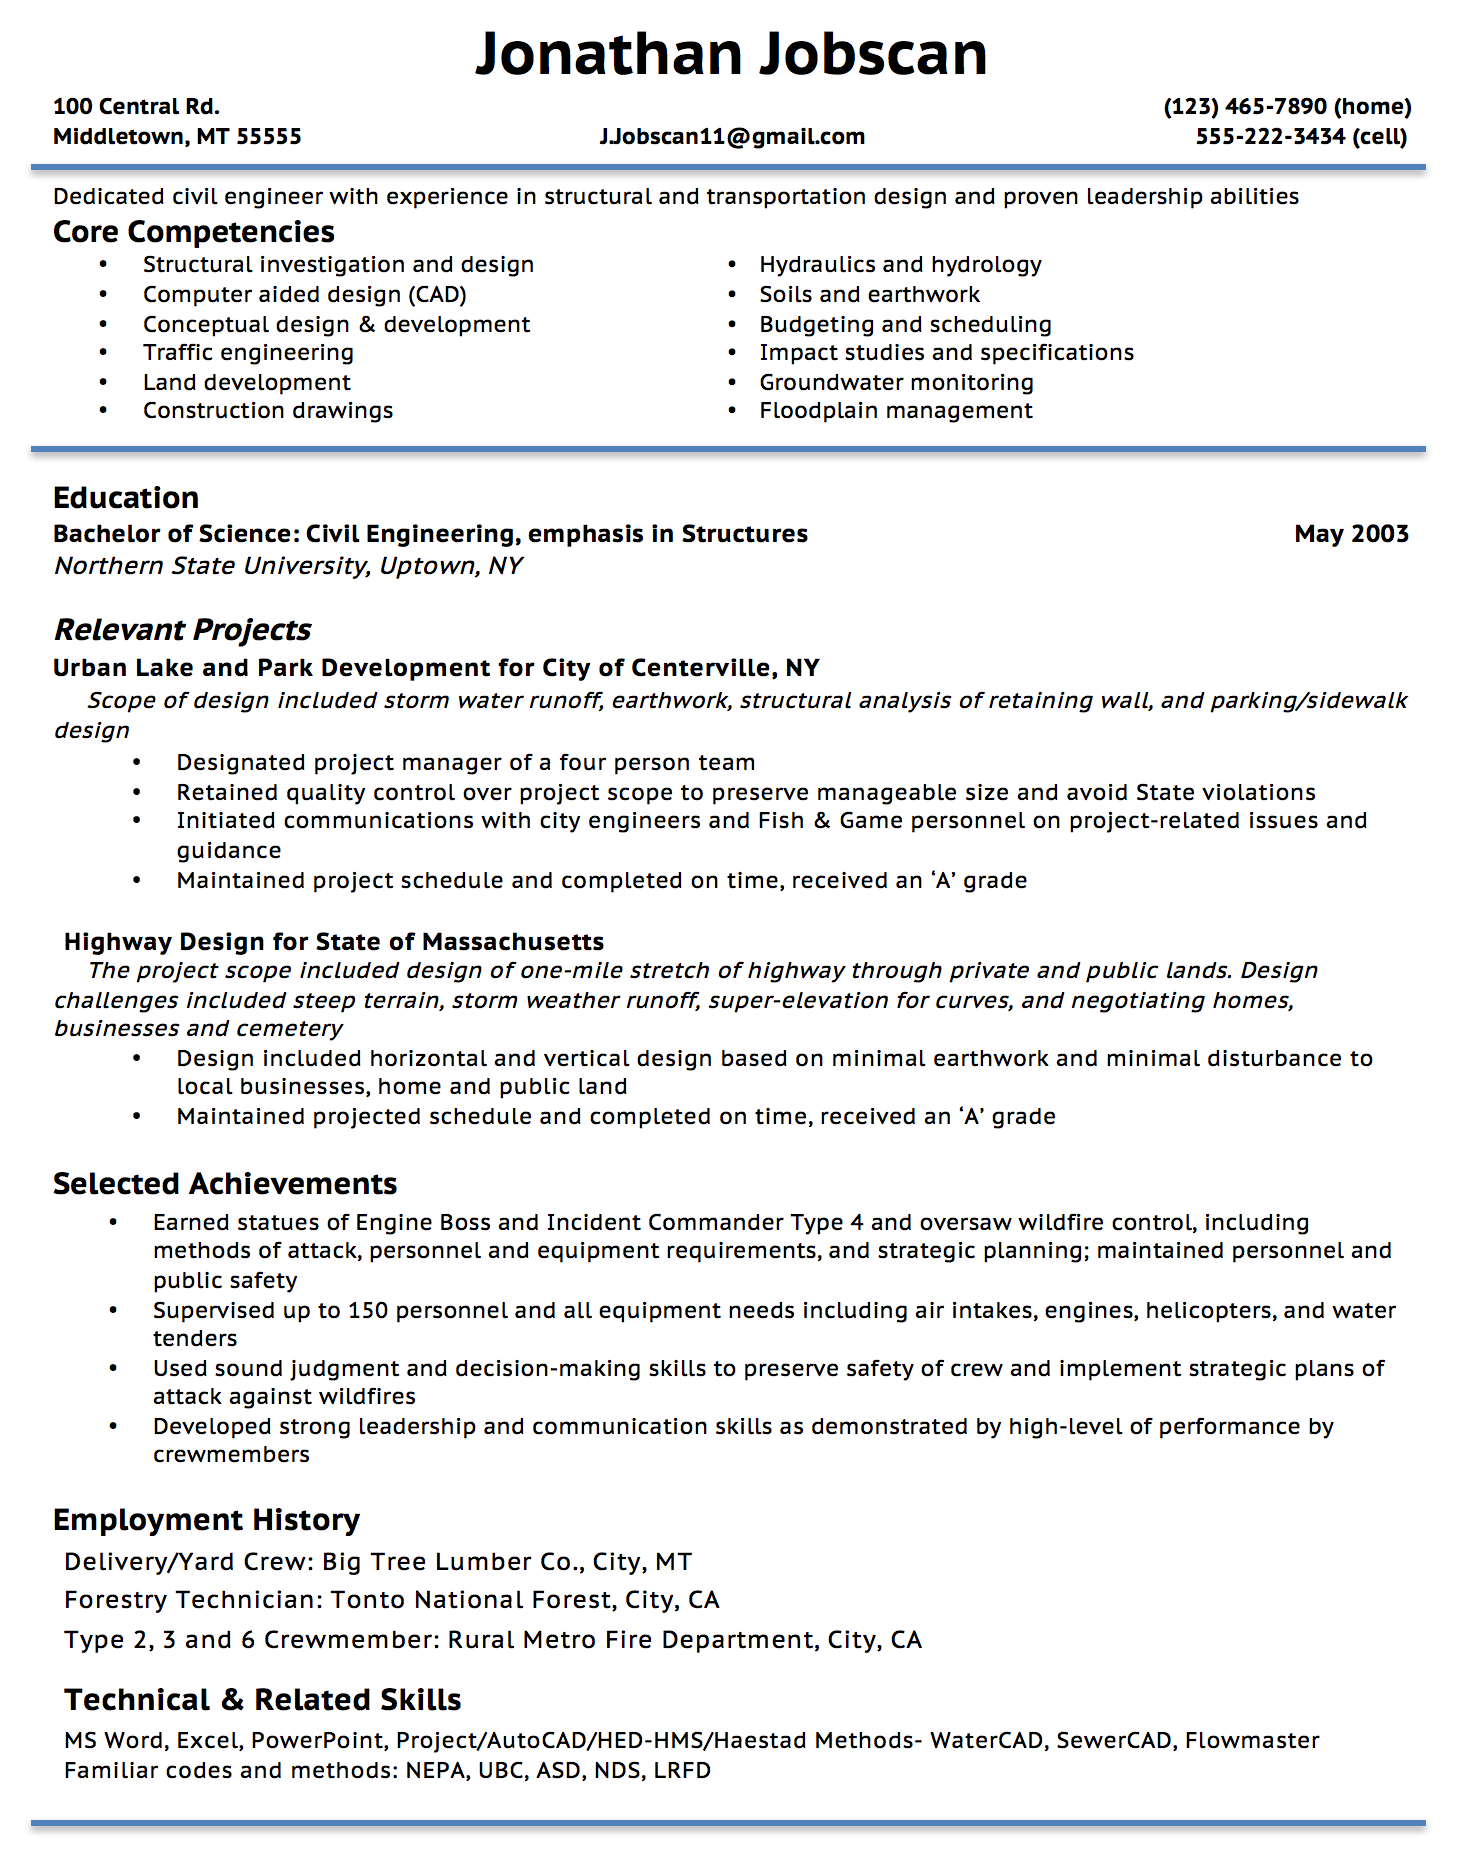 Opposenewapstandardsus  Remarkable Resume Writing Guide  Jobscan With Gorgeous Example Of A Functional Resume Format With Cute Dental Assistant Resumes Also Business Management Resume In Addition Current Resume Trends And Finance Manager Resume As Well As Human Resources Manager Resume Additionally Preparing A Resume From Jobscanco With Opposenewapstandardsus  Gorgeous Resume Writing Guide  Jobscan With Cute Example Of A Functional Resume Format And Remarkable Dental Assistant Resumes Also Business Management Resume In Addition Current Resume Trends From Jobscanco